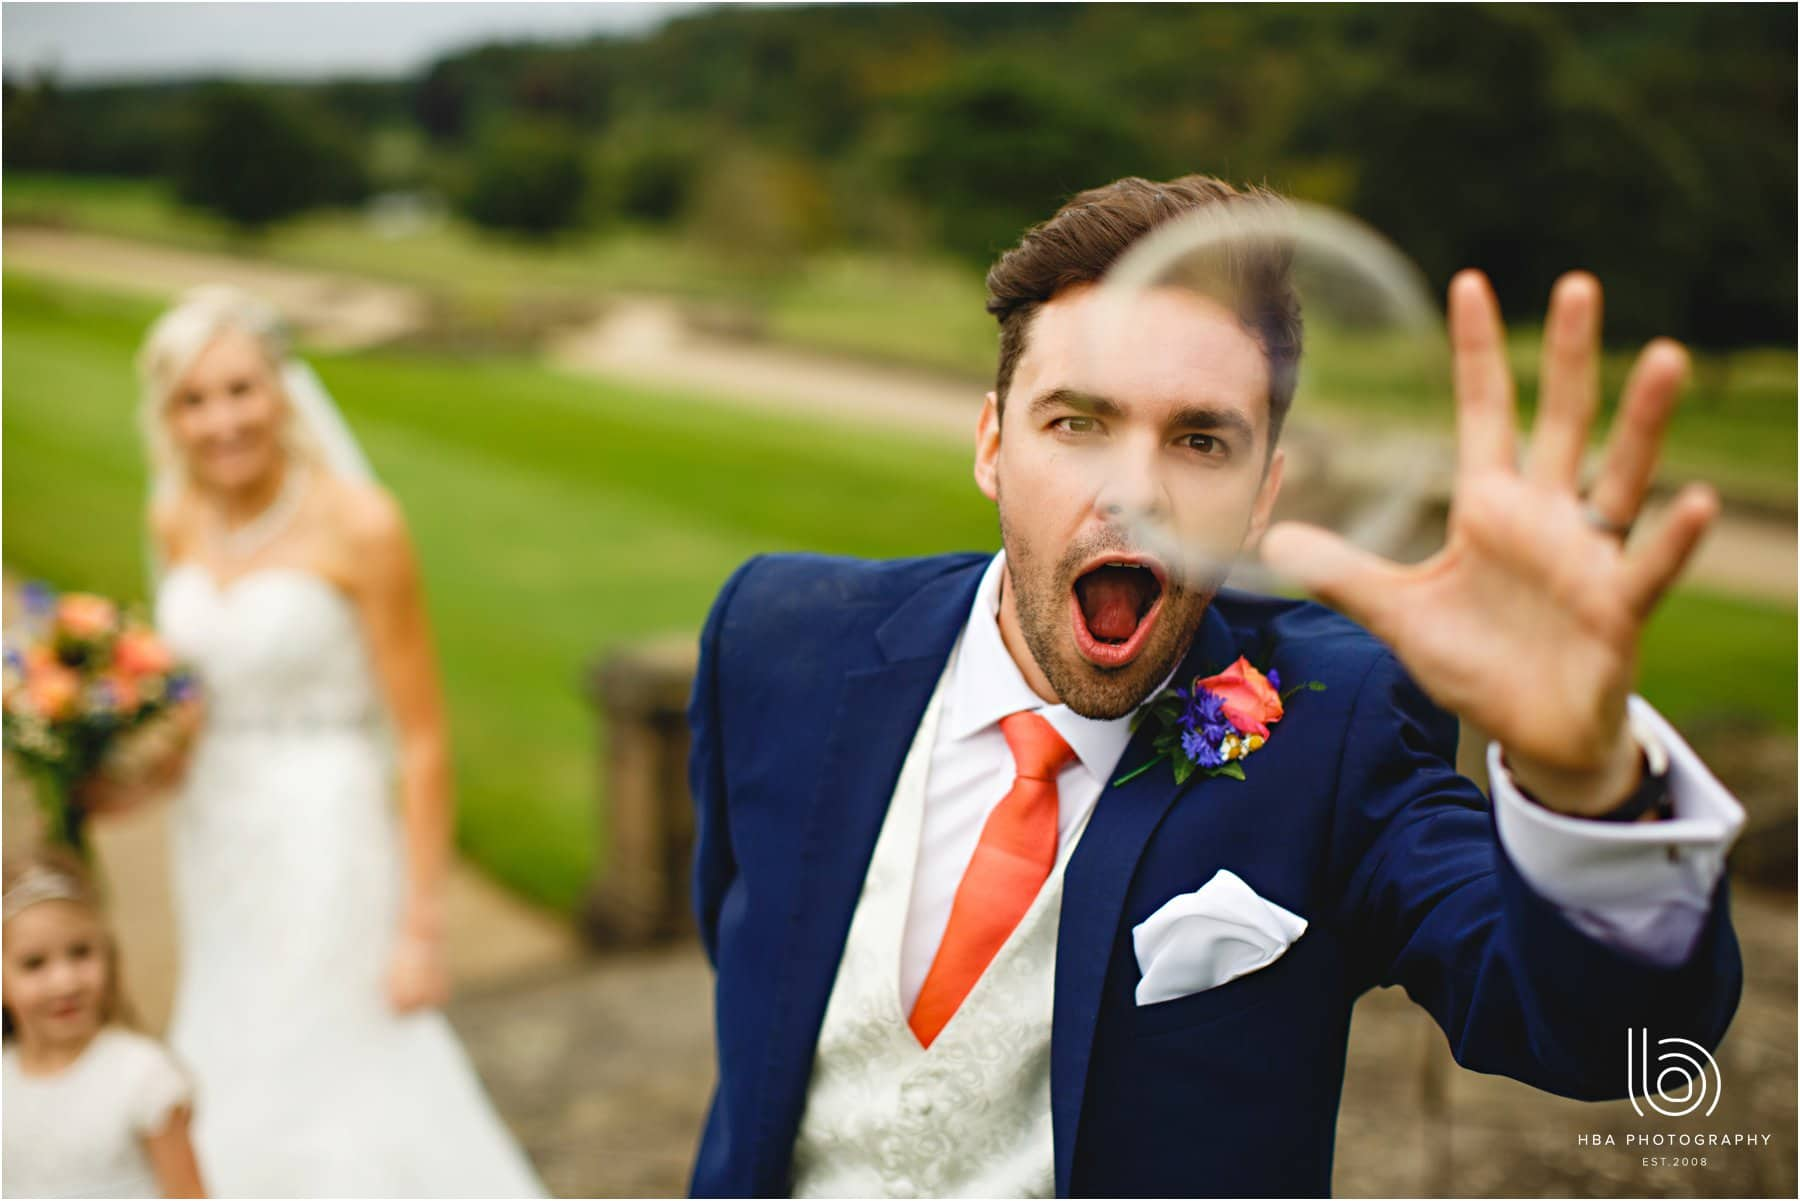 the groom chasing a bubble